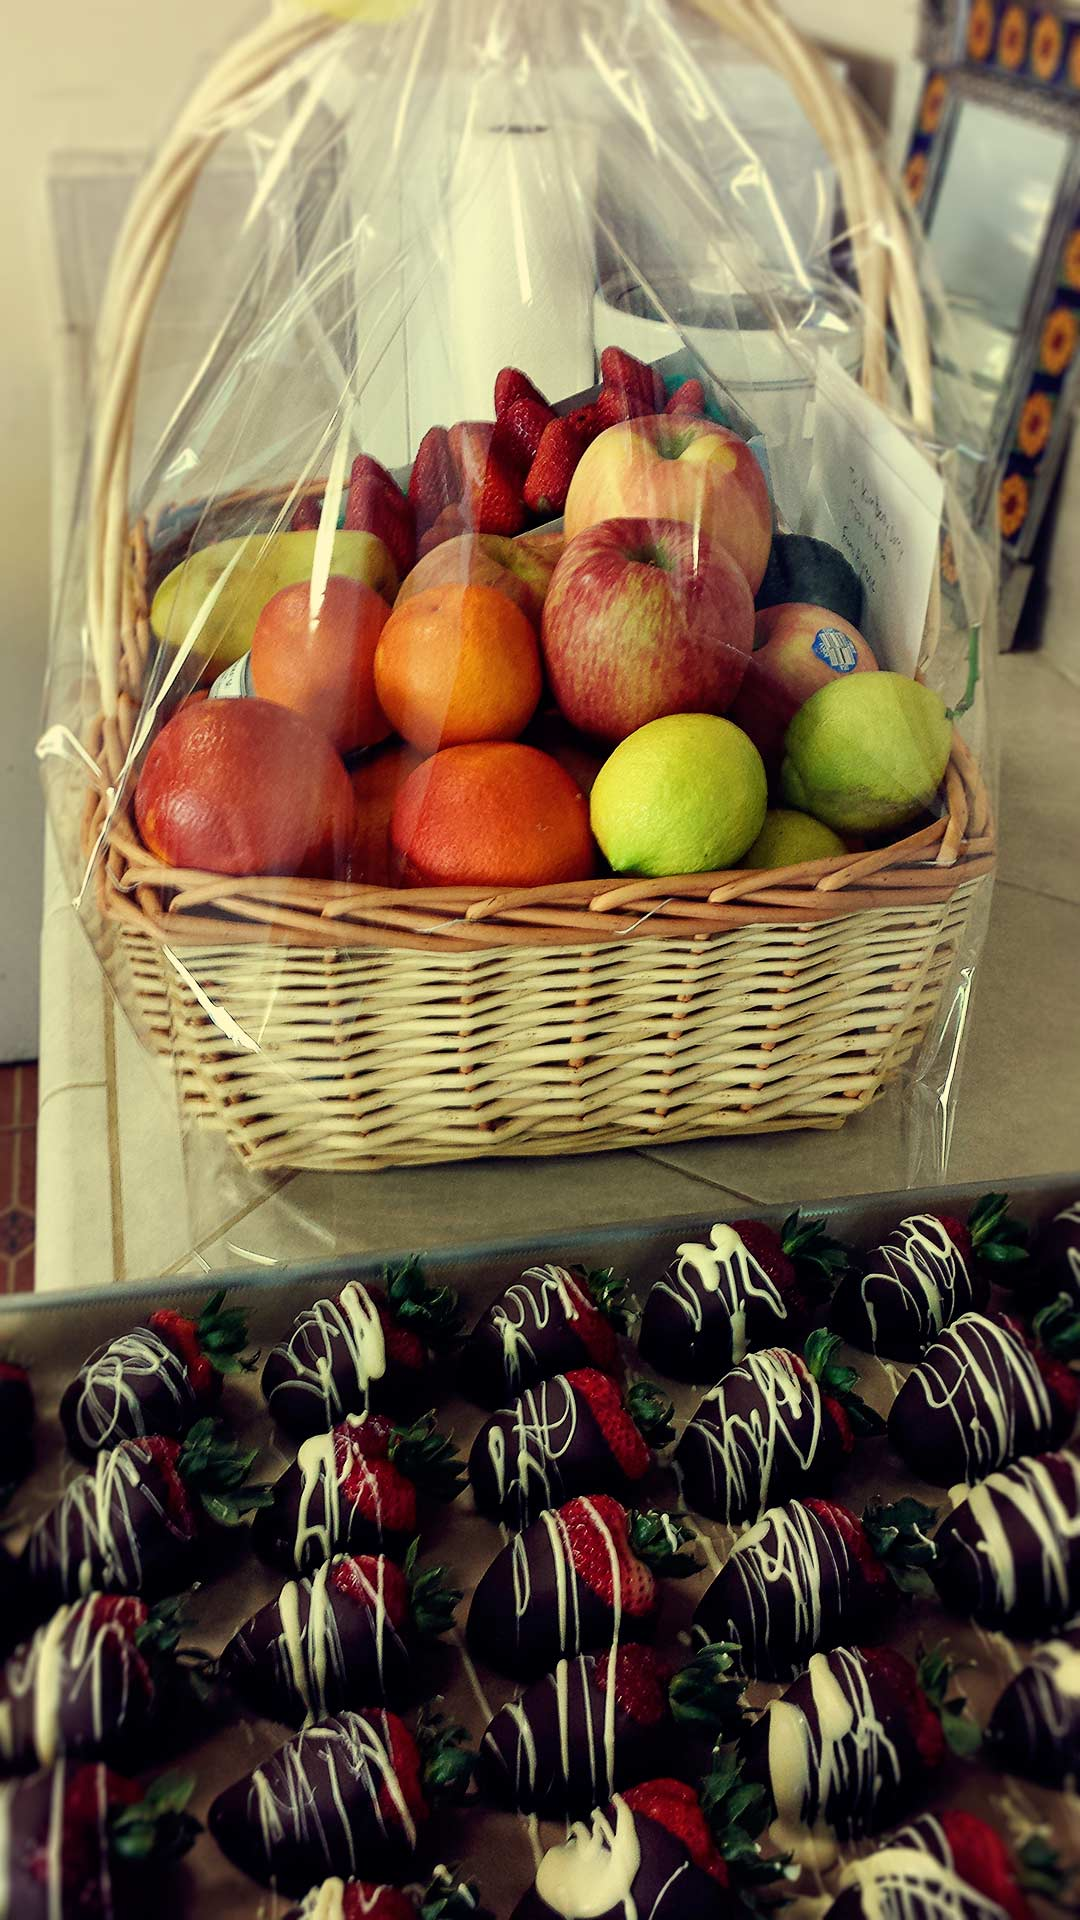 Fruit And Chocolate Gift Boxes : Gifts fruit boxes gift baskets locally made jewelry